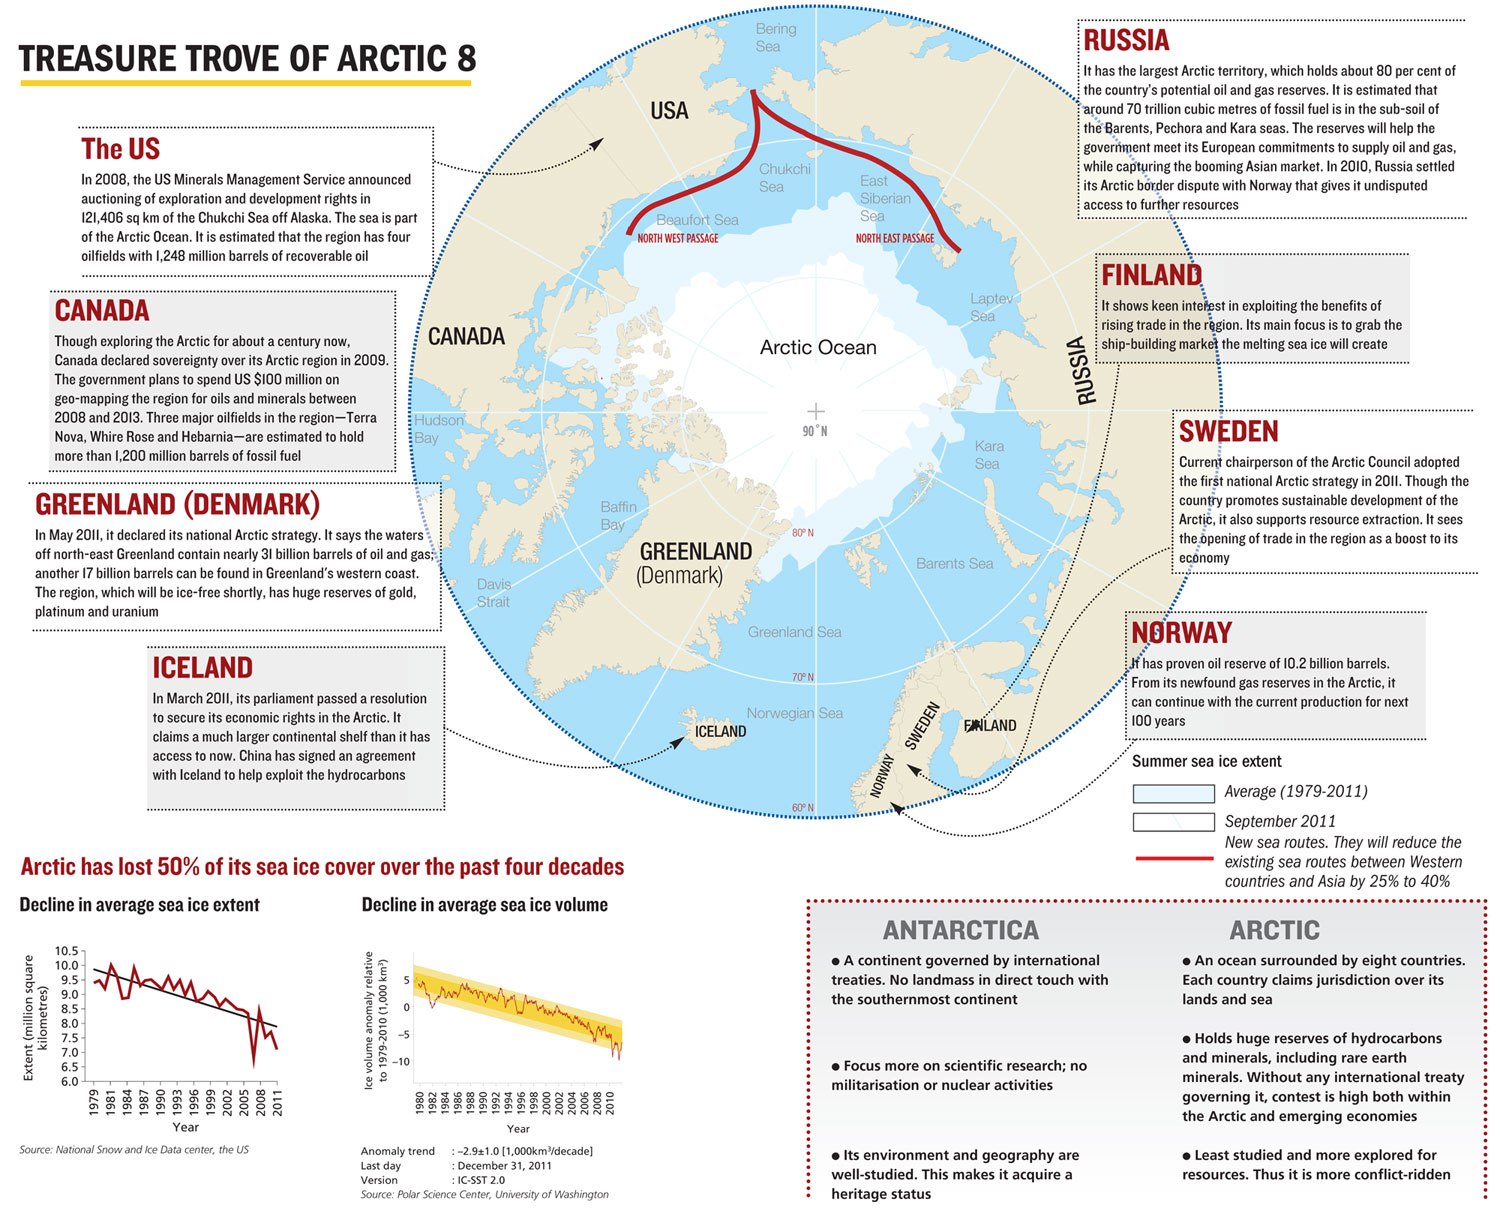 Treasure trove of arctic resources